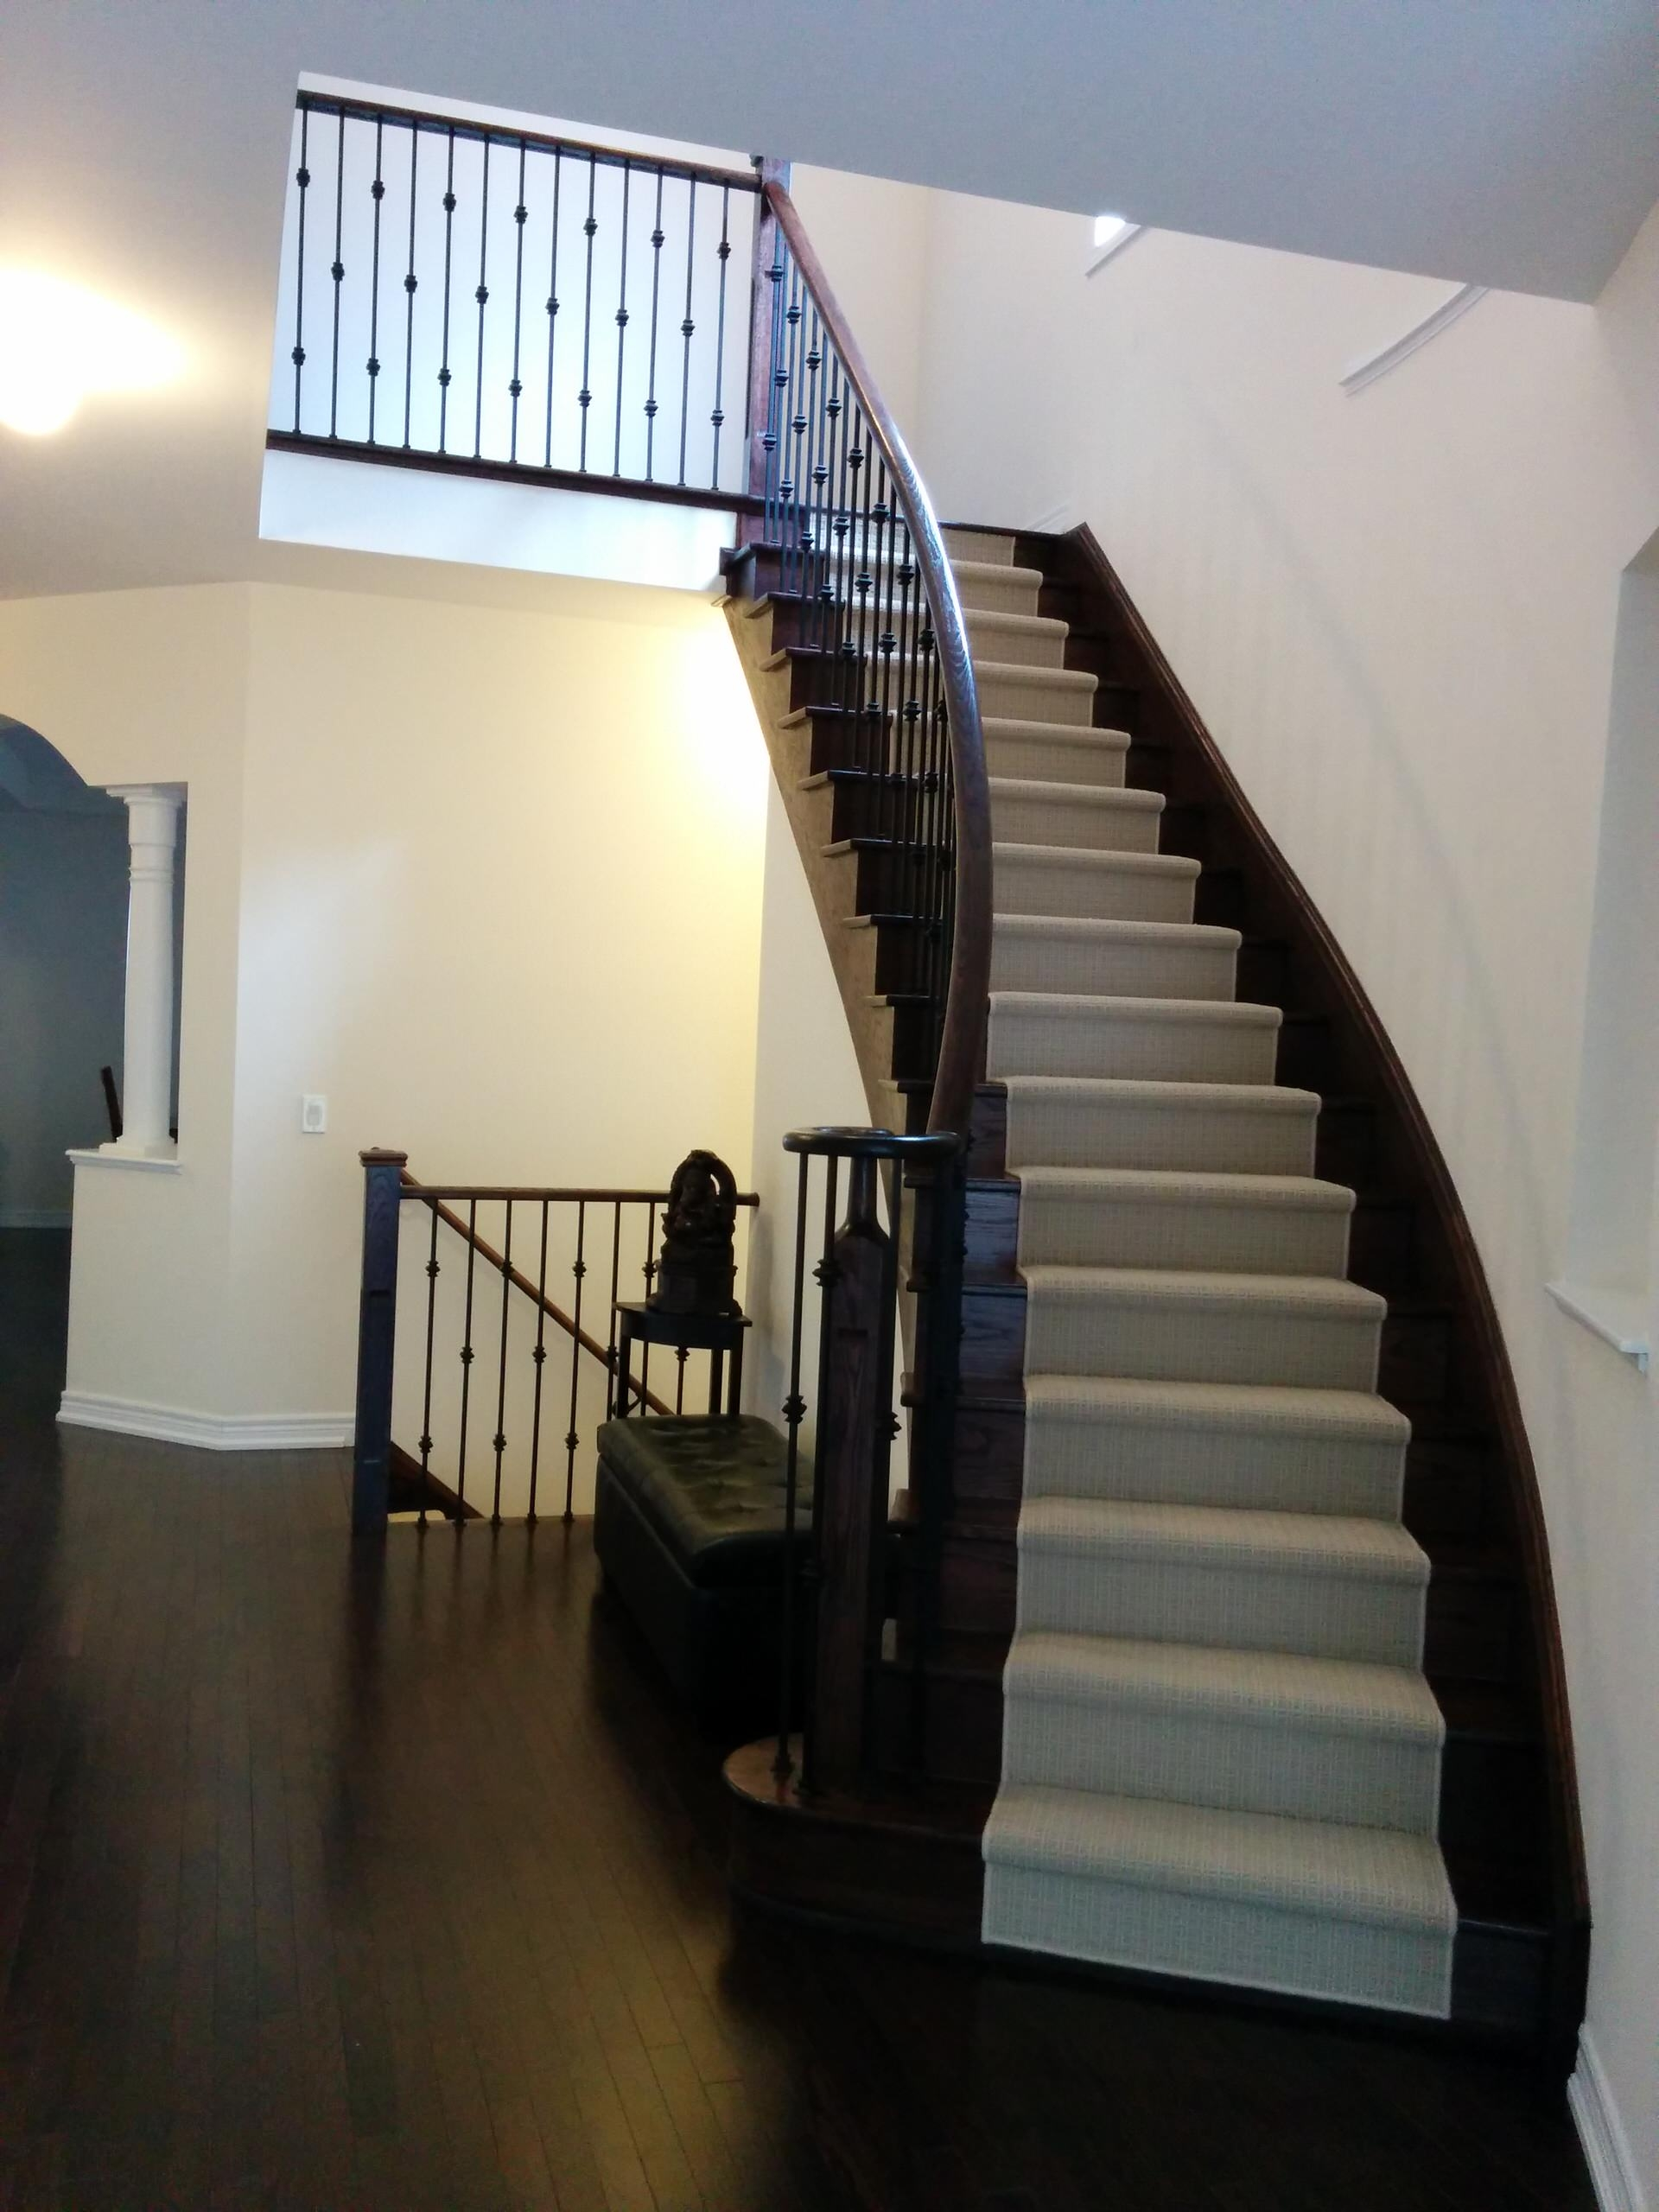 Wool Stair Runner Houzz   Wool Carpet Runners For Stairs   Flooring   Woven   Rectangular Cord Treads   Stair Country Style   Modern